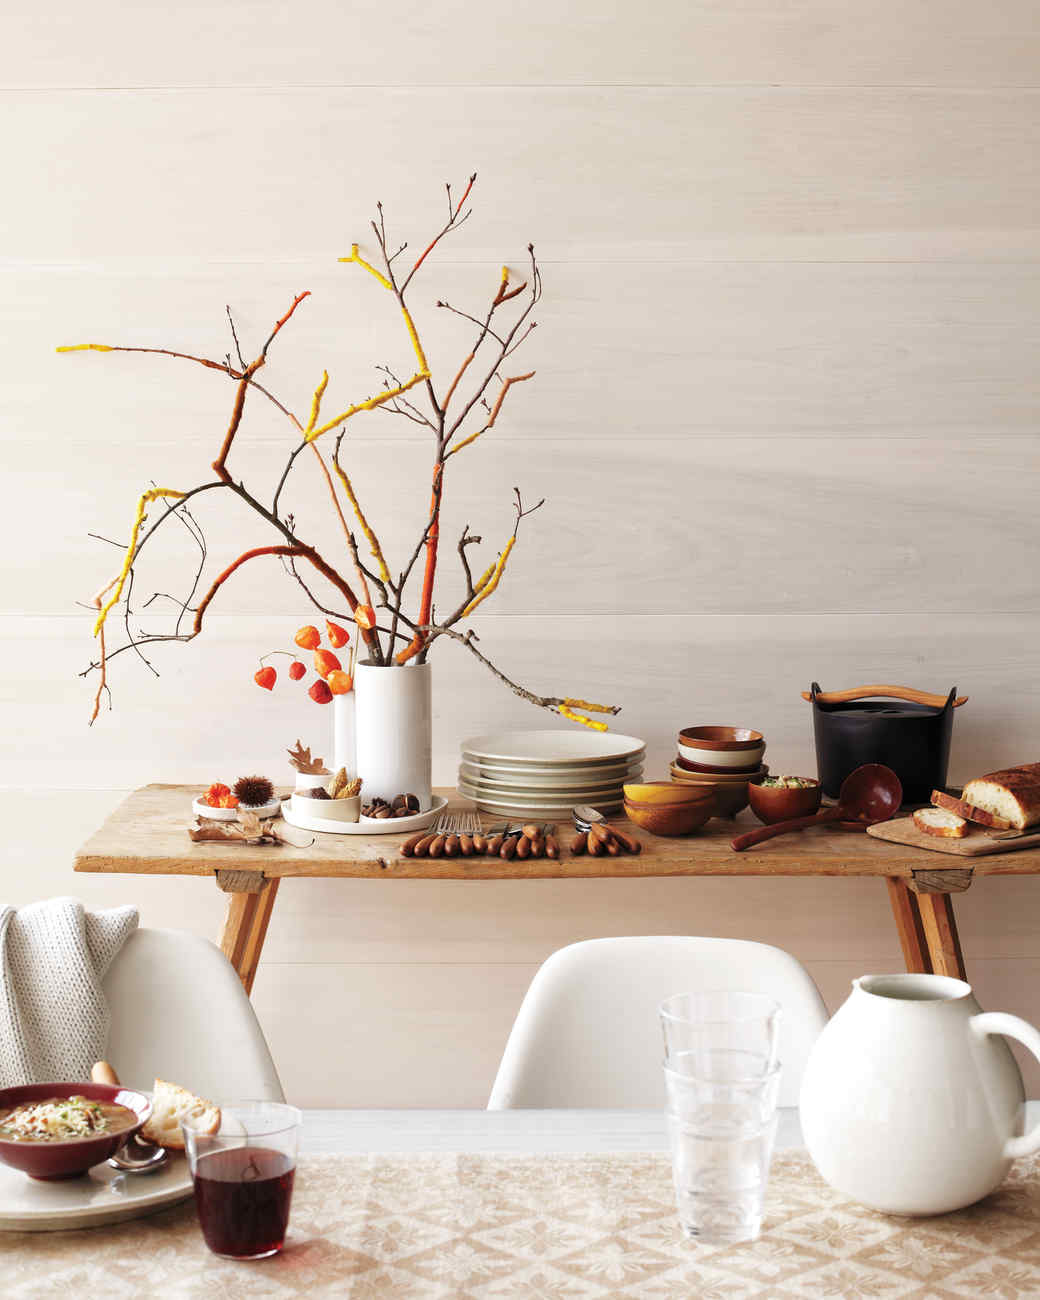 Tree Centerpieces Time To Branch Out With Your Table Displays